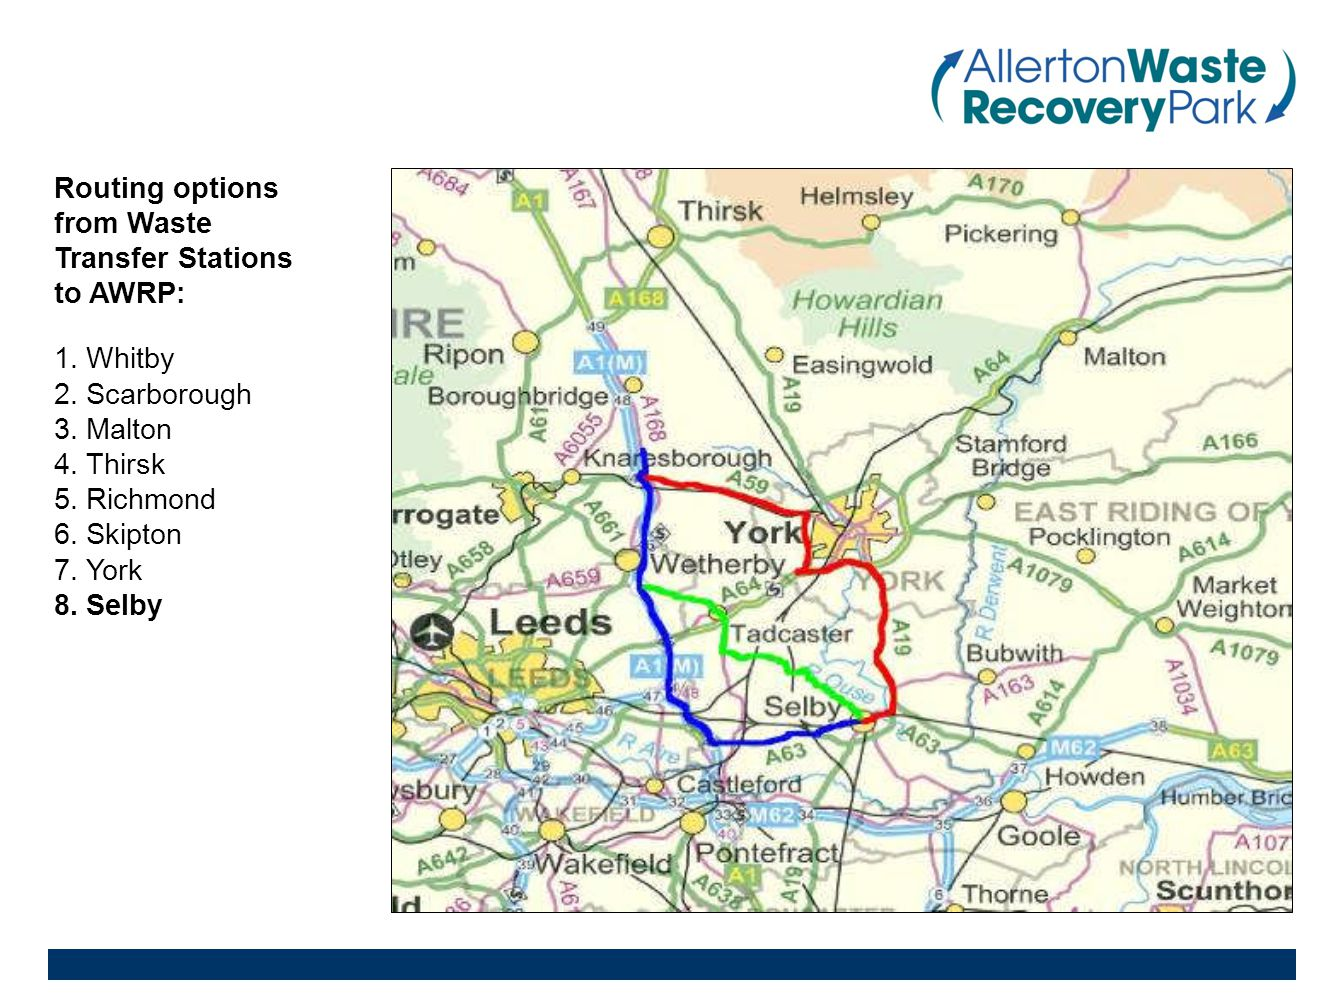 Routing options from Waste Transfer Stations to AWRP: 1.Whitby 2.Scarborough 3.Malton 4.Thirsk 5.Richmond 6.Skipton 7.York 8.Selby